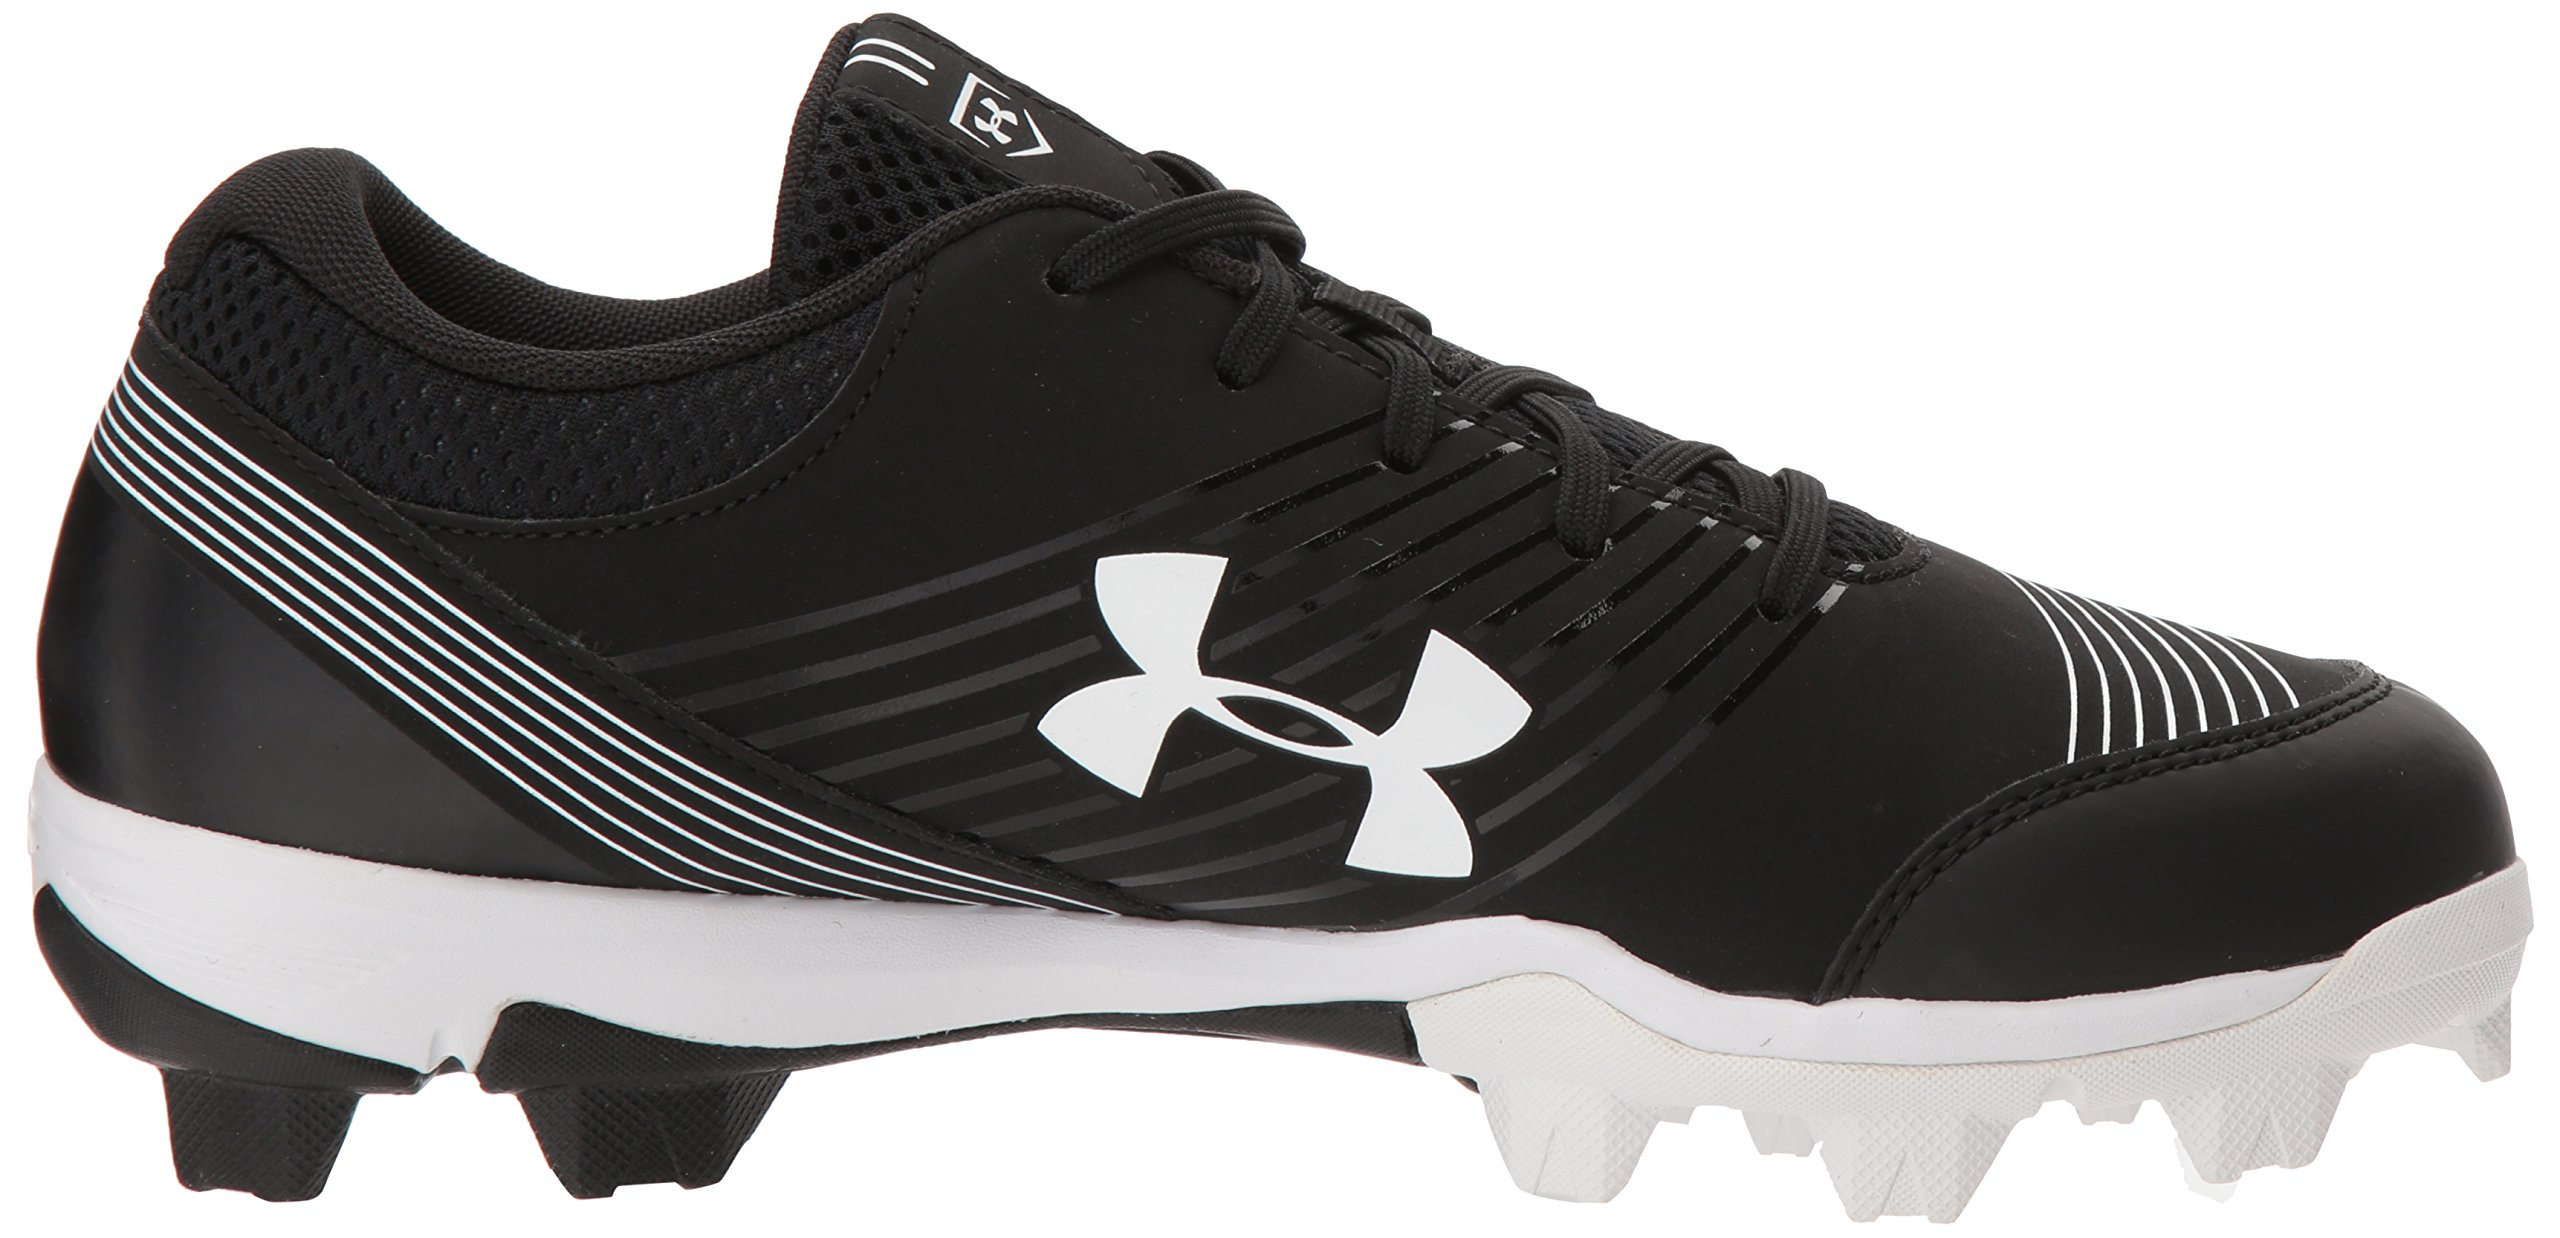 Under Armour Women's Glyde RM Softball Shoe 011/Black, 7 by Under Armour (Image #7)